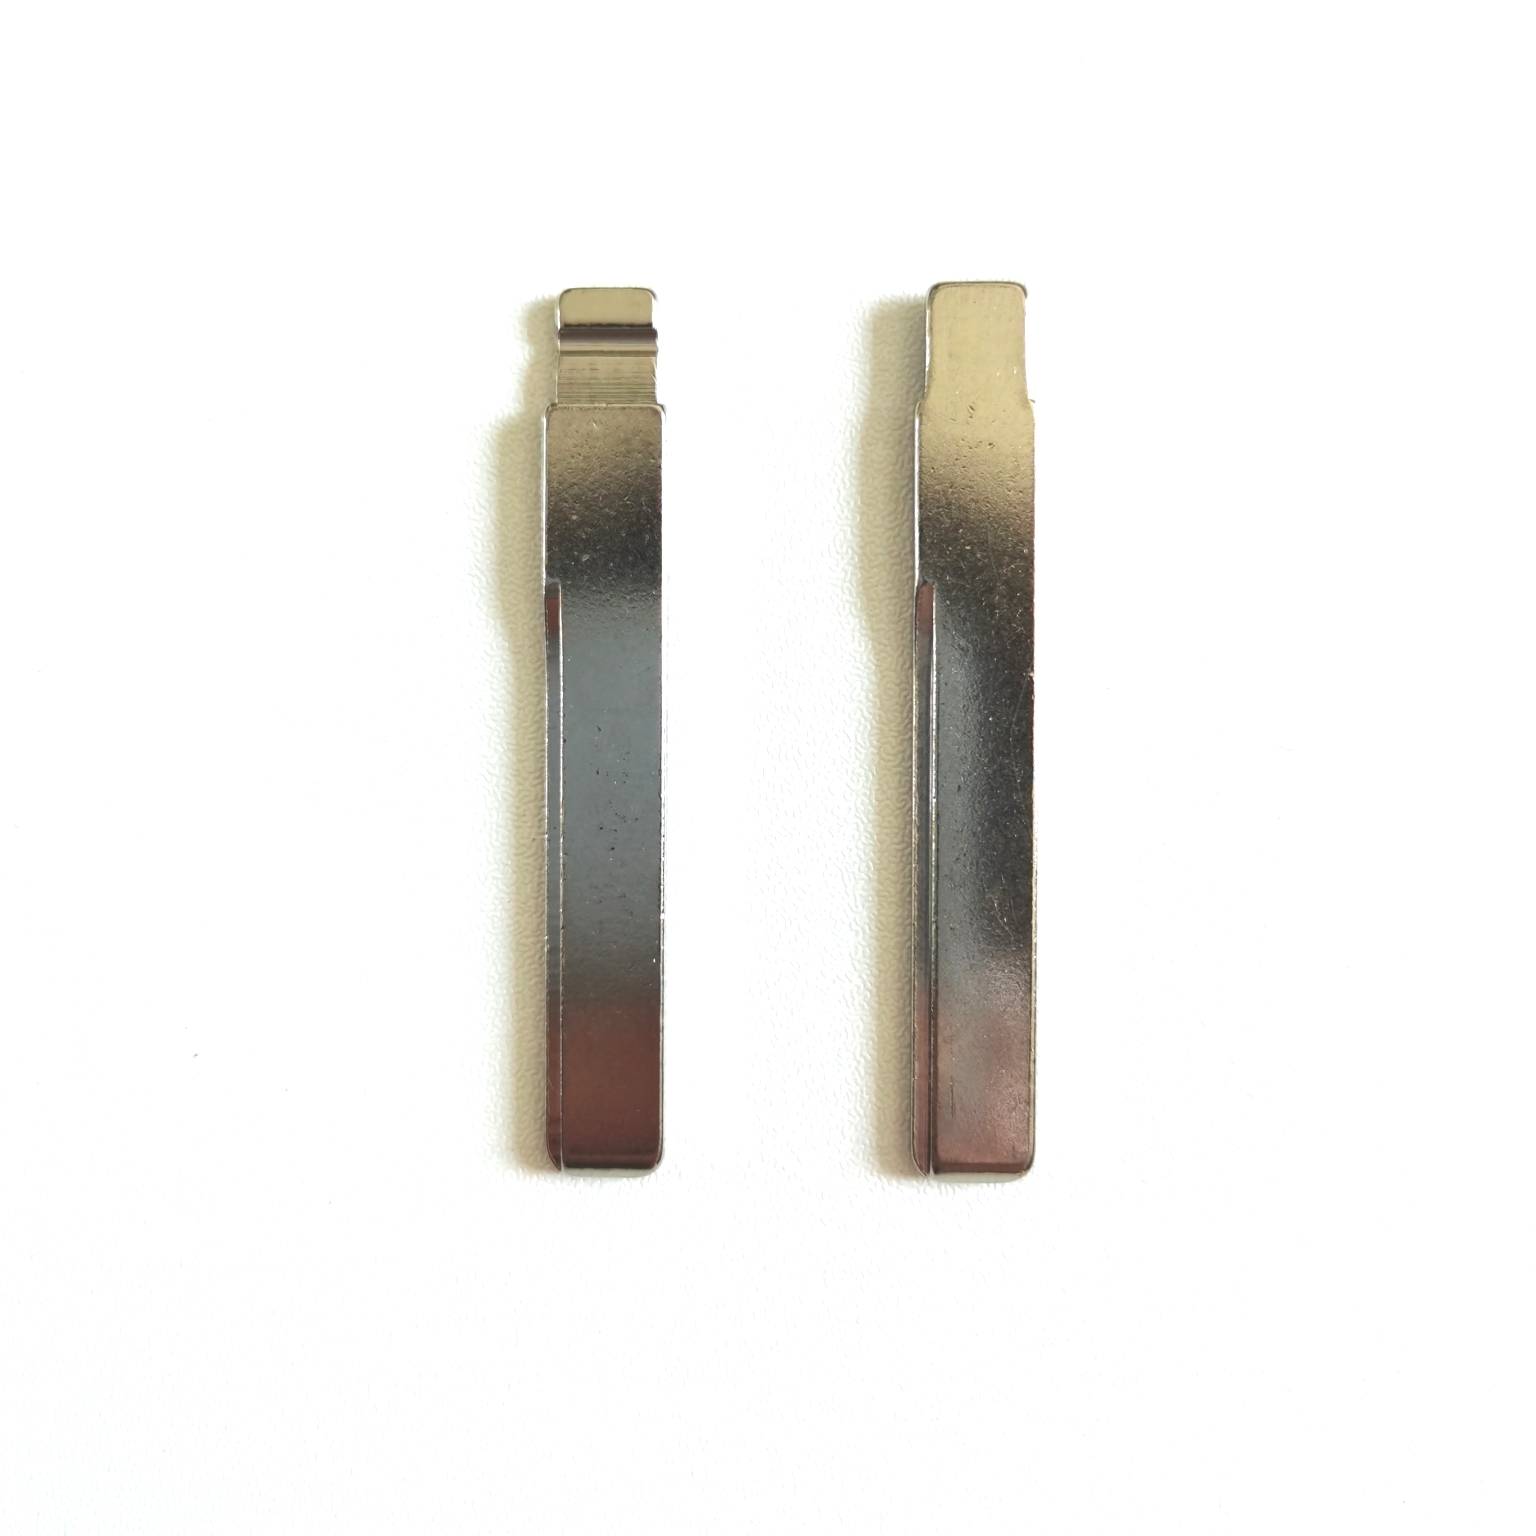 #78 GM45 Key Blade for GM Opel -  Pack of 10